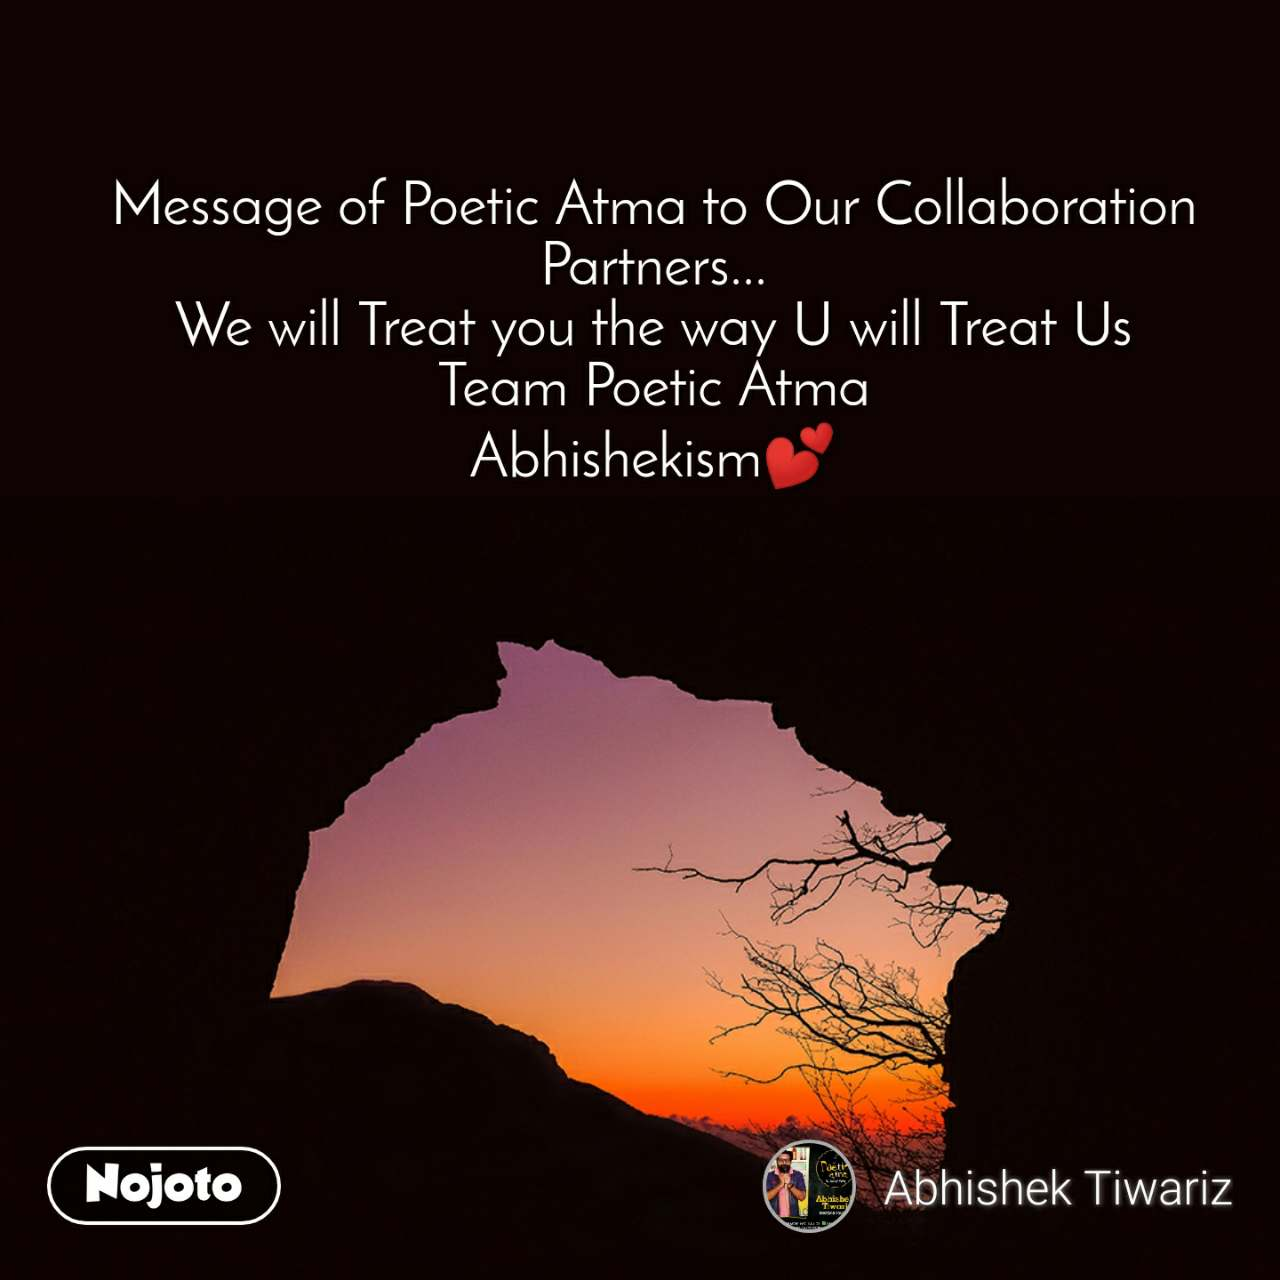 Message of Poetic Atma to Our Collaboration Partners... We will Treat you the way U will Treat Us Team Poetic Atma Abhishekism💕